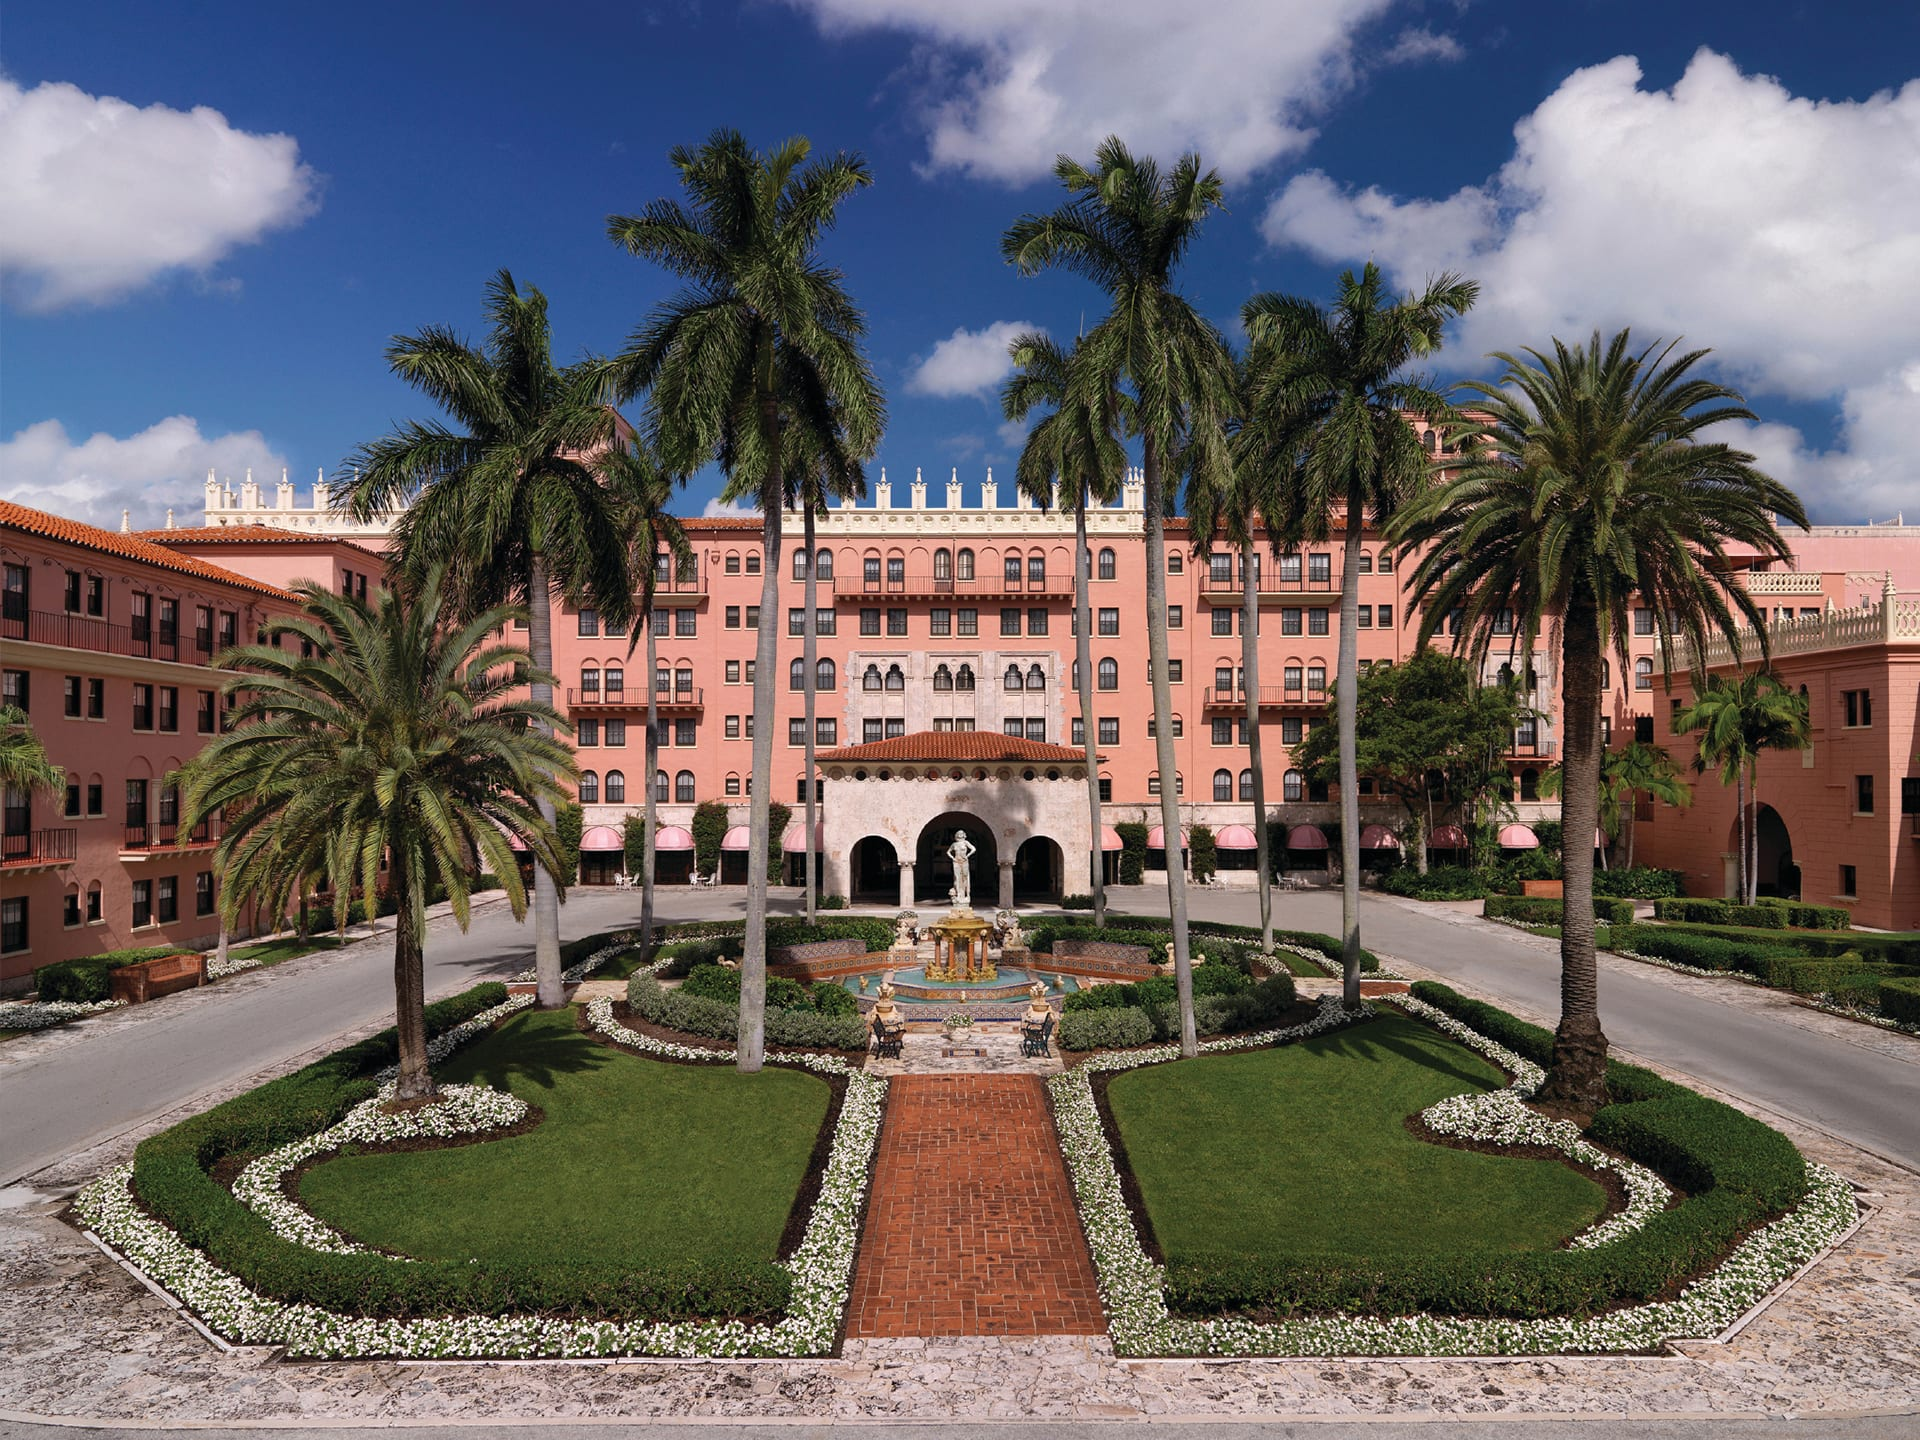 Boca Raton Resort Romantic Hotel Florida